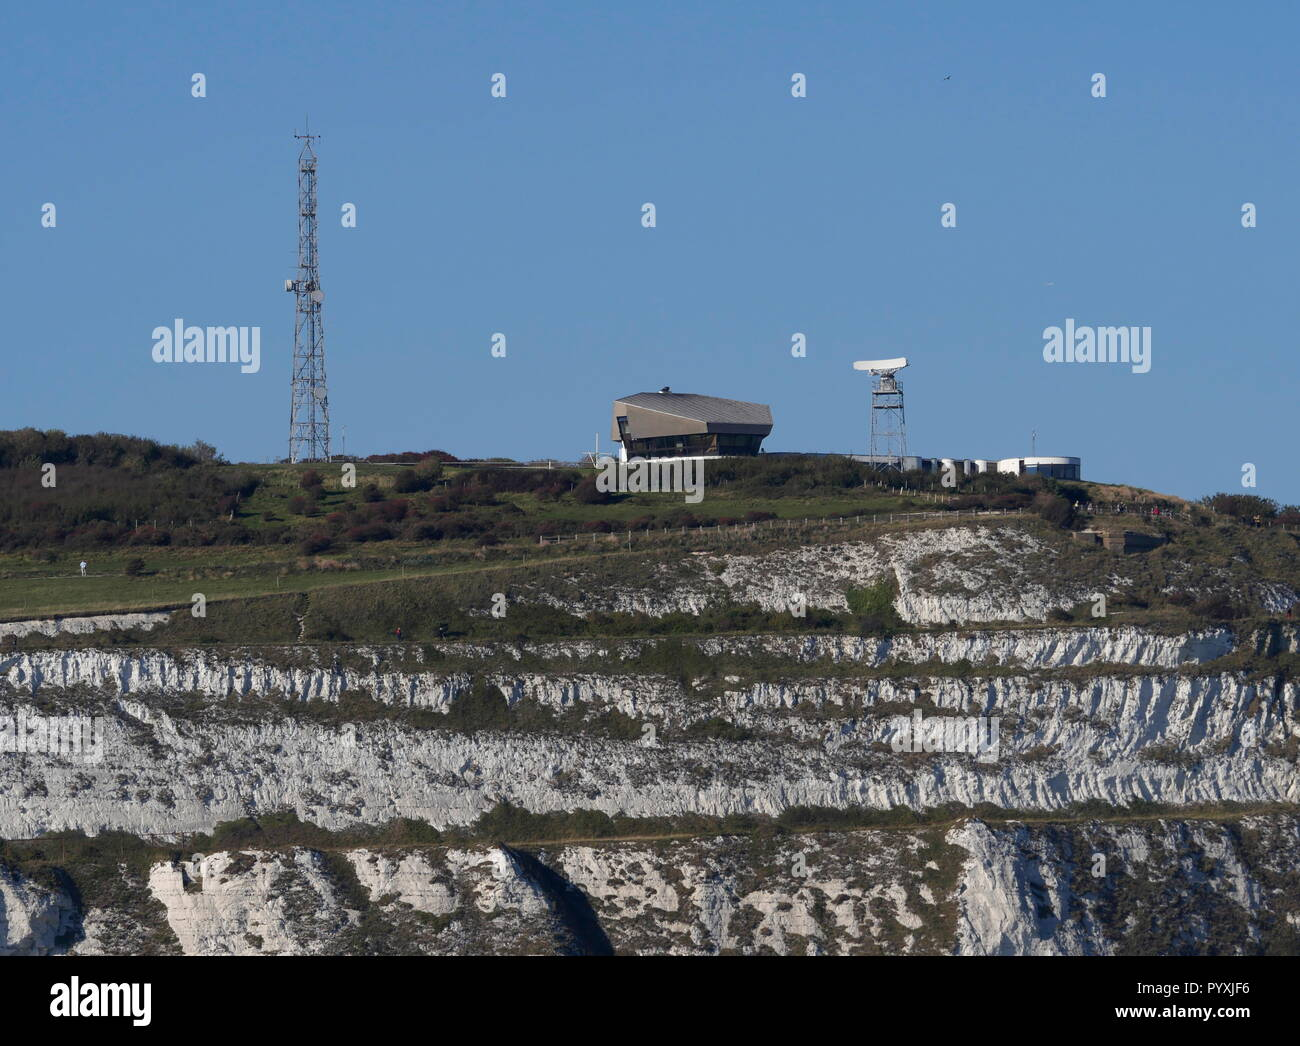 AJAXNETPHOTO. 2018. DOVER, ENGLAND. - CLIFF TOP LOOK-OUT - MCA HM COASTGUARD STATION AT LANGDON BATTERY ON TH CLIFF TOPS AT DOVER OVERLOOKING THE ENGLISH CHANNEL. PHOTO:JONATHAN EASTLAND/AJAX REF:GX8_180910_904 - Stock Image